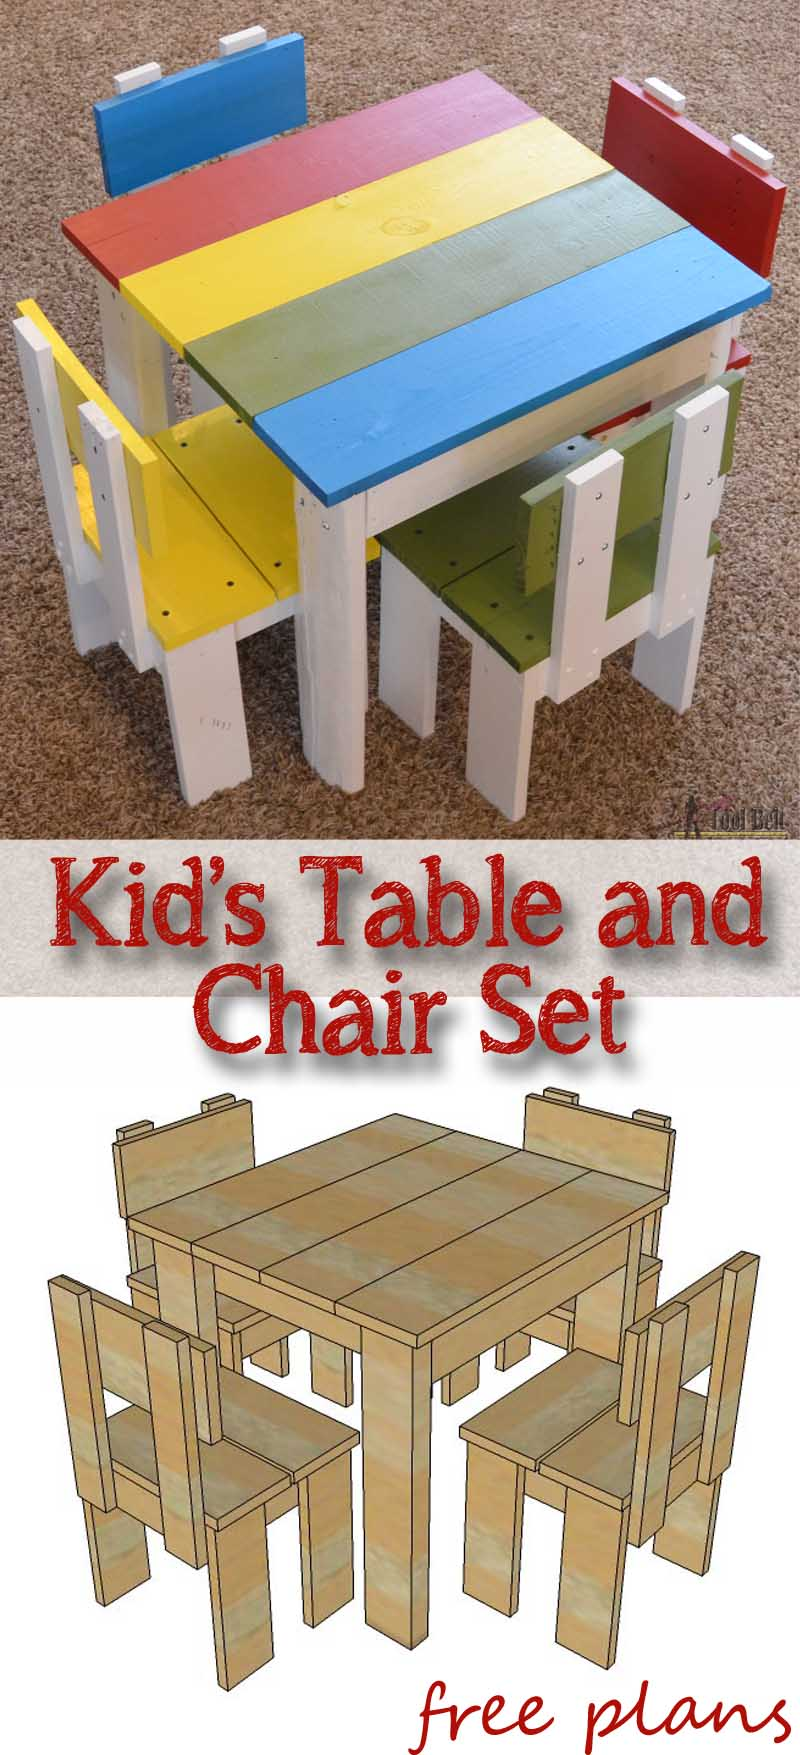 Sensational Simple Kids Table And Chair Set Her Tool Belt Caraccident5 Cool Chair Designs And Ideas Caraccident5Info